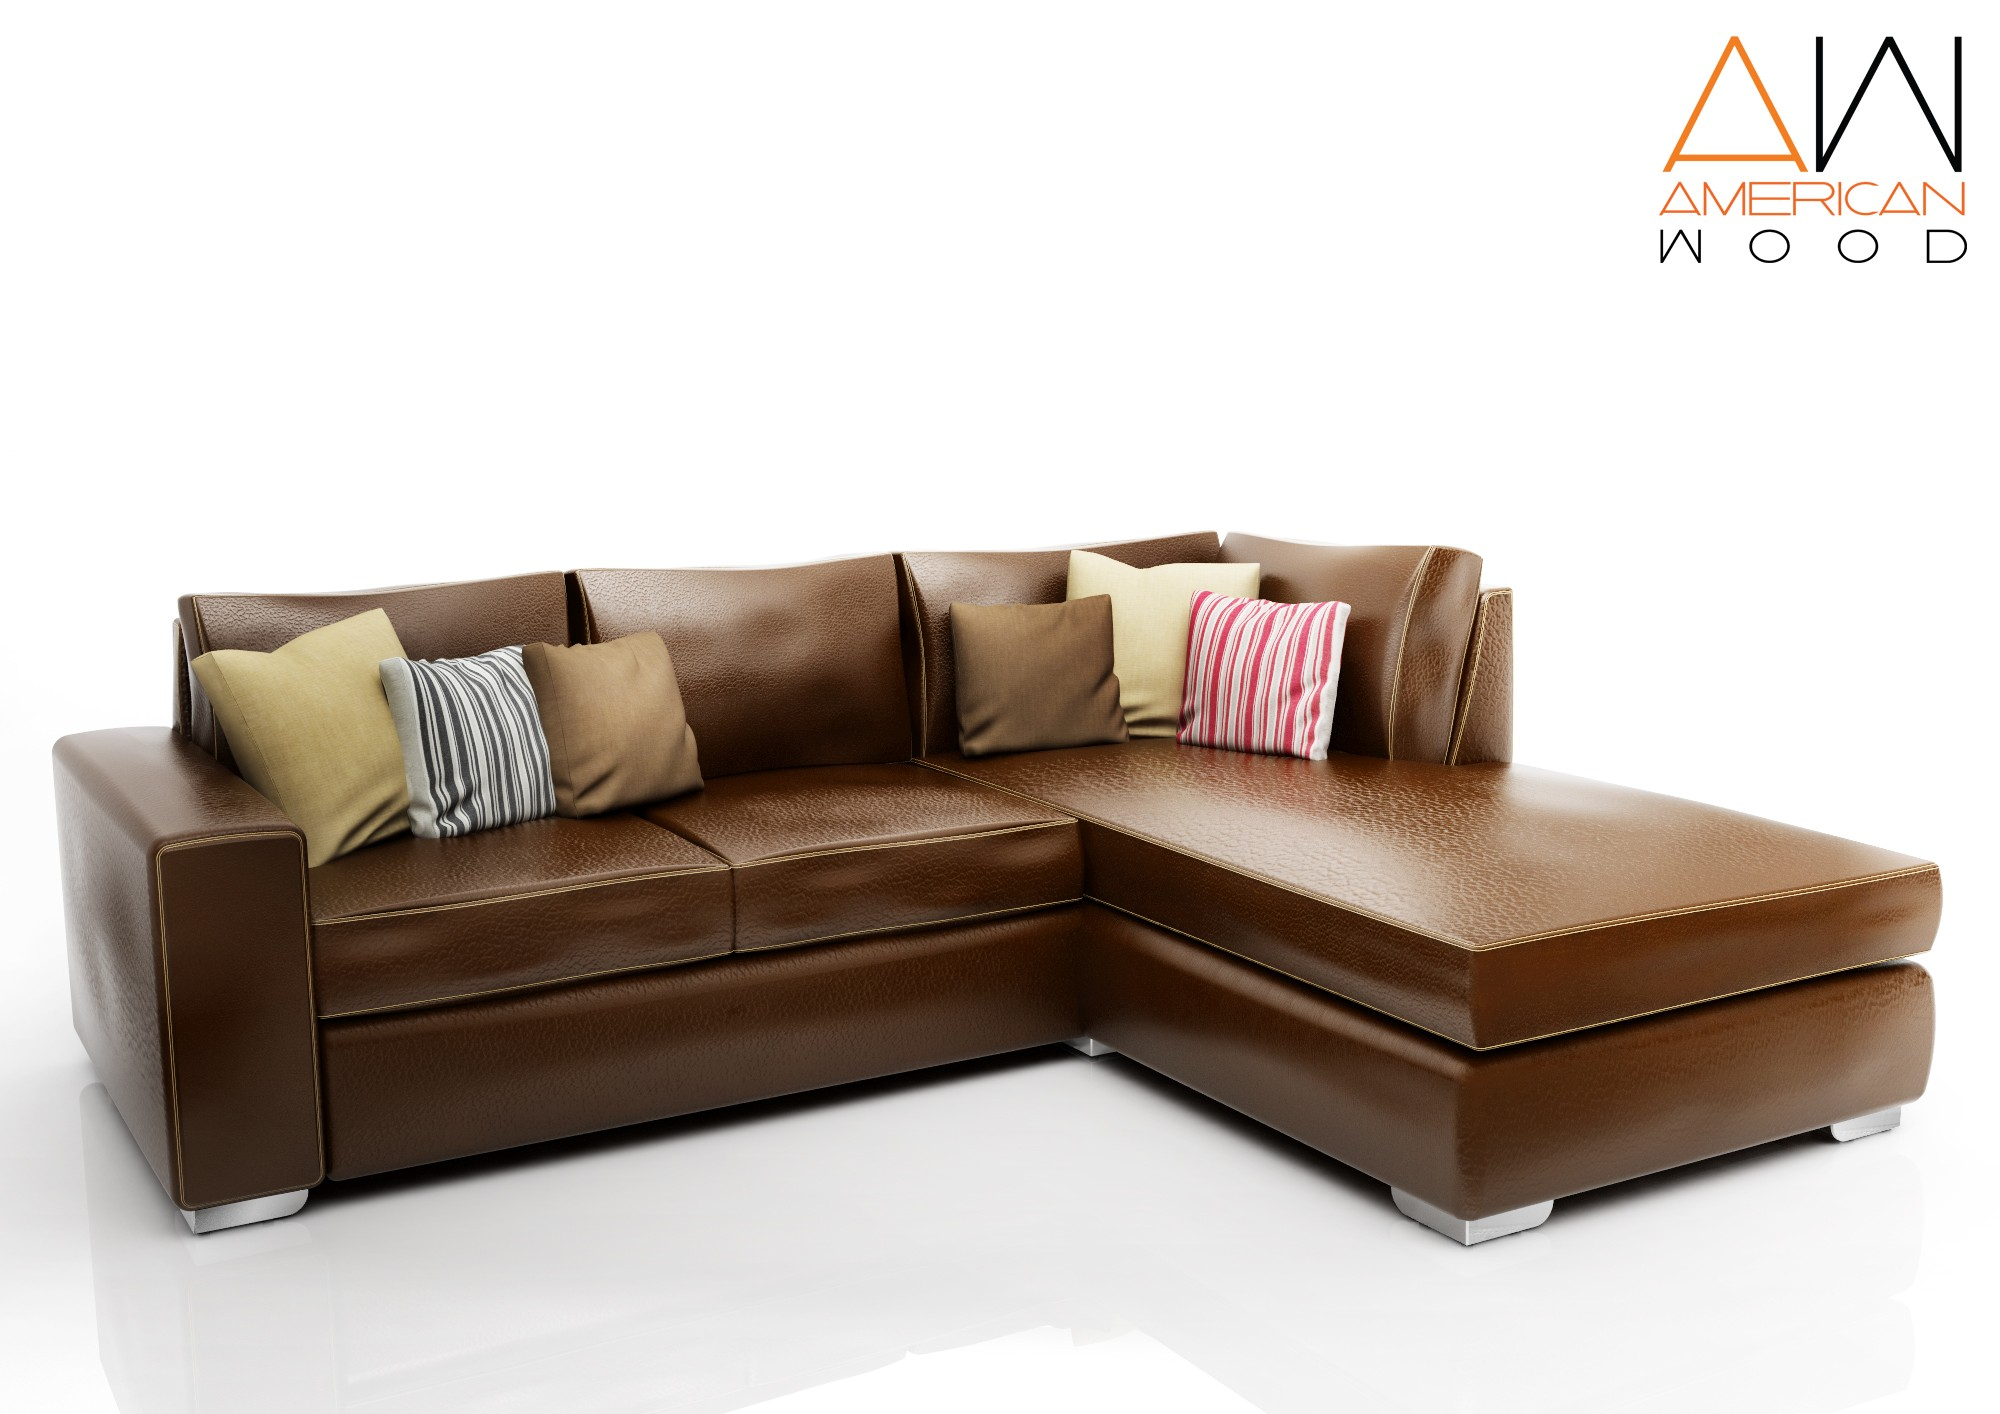 Sofa Concept Esquinero American Wood Chocolate